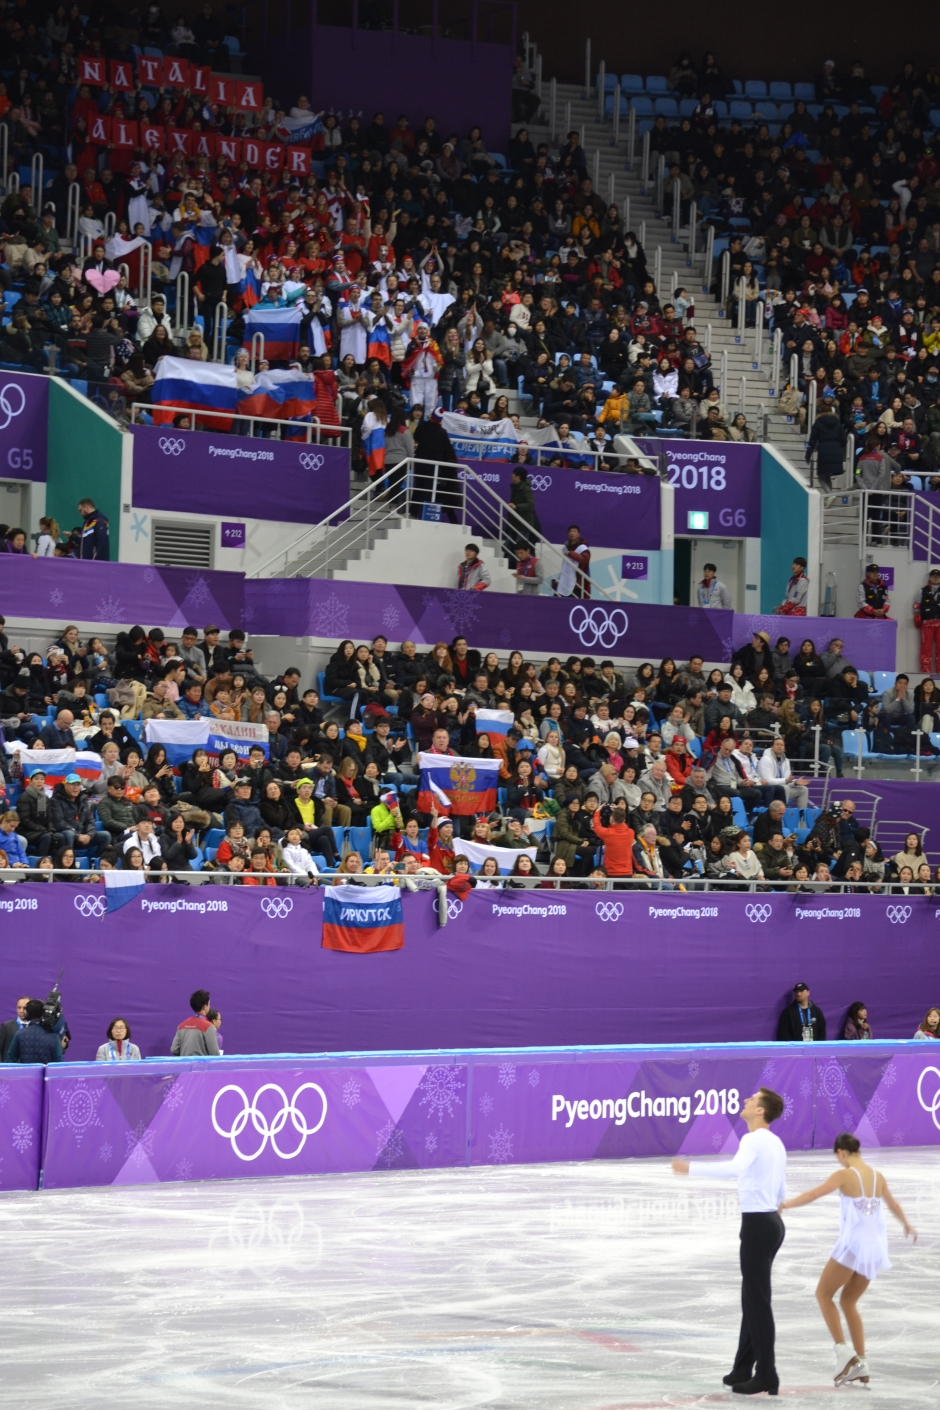 Russia Fans at Pairs Figure Skating